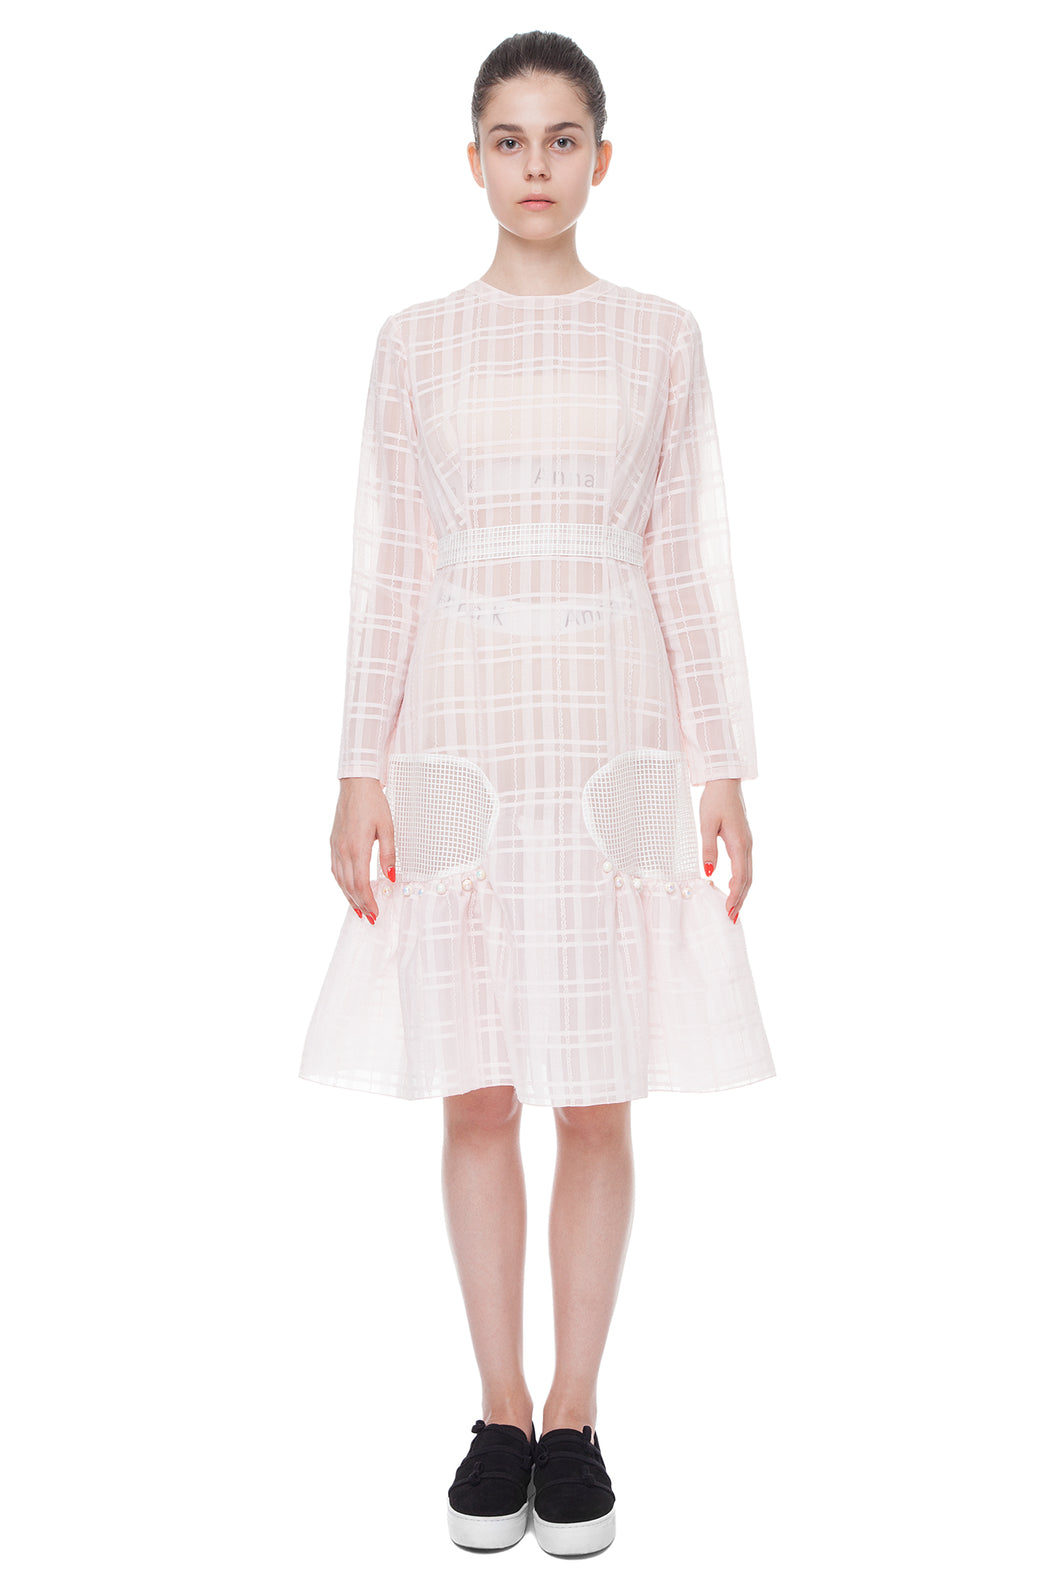 Pink transparent bell sleeve dress - Anna K